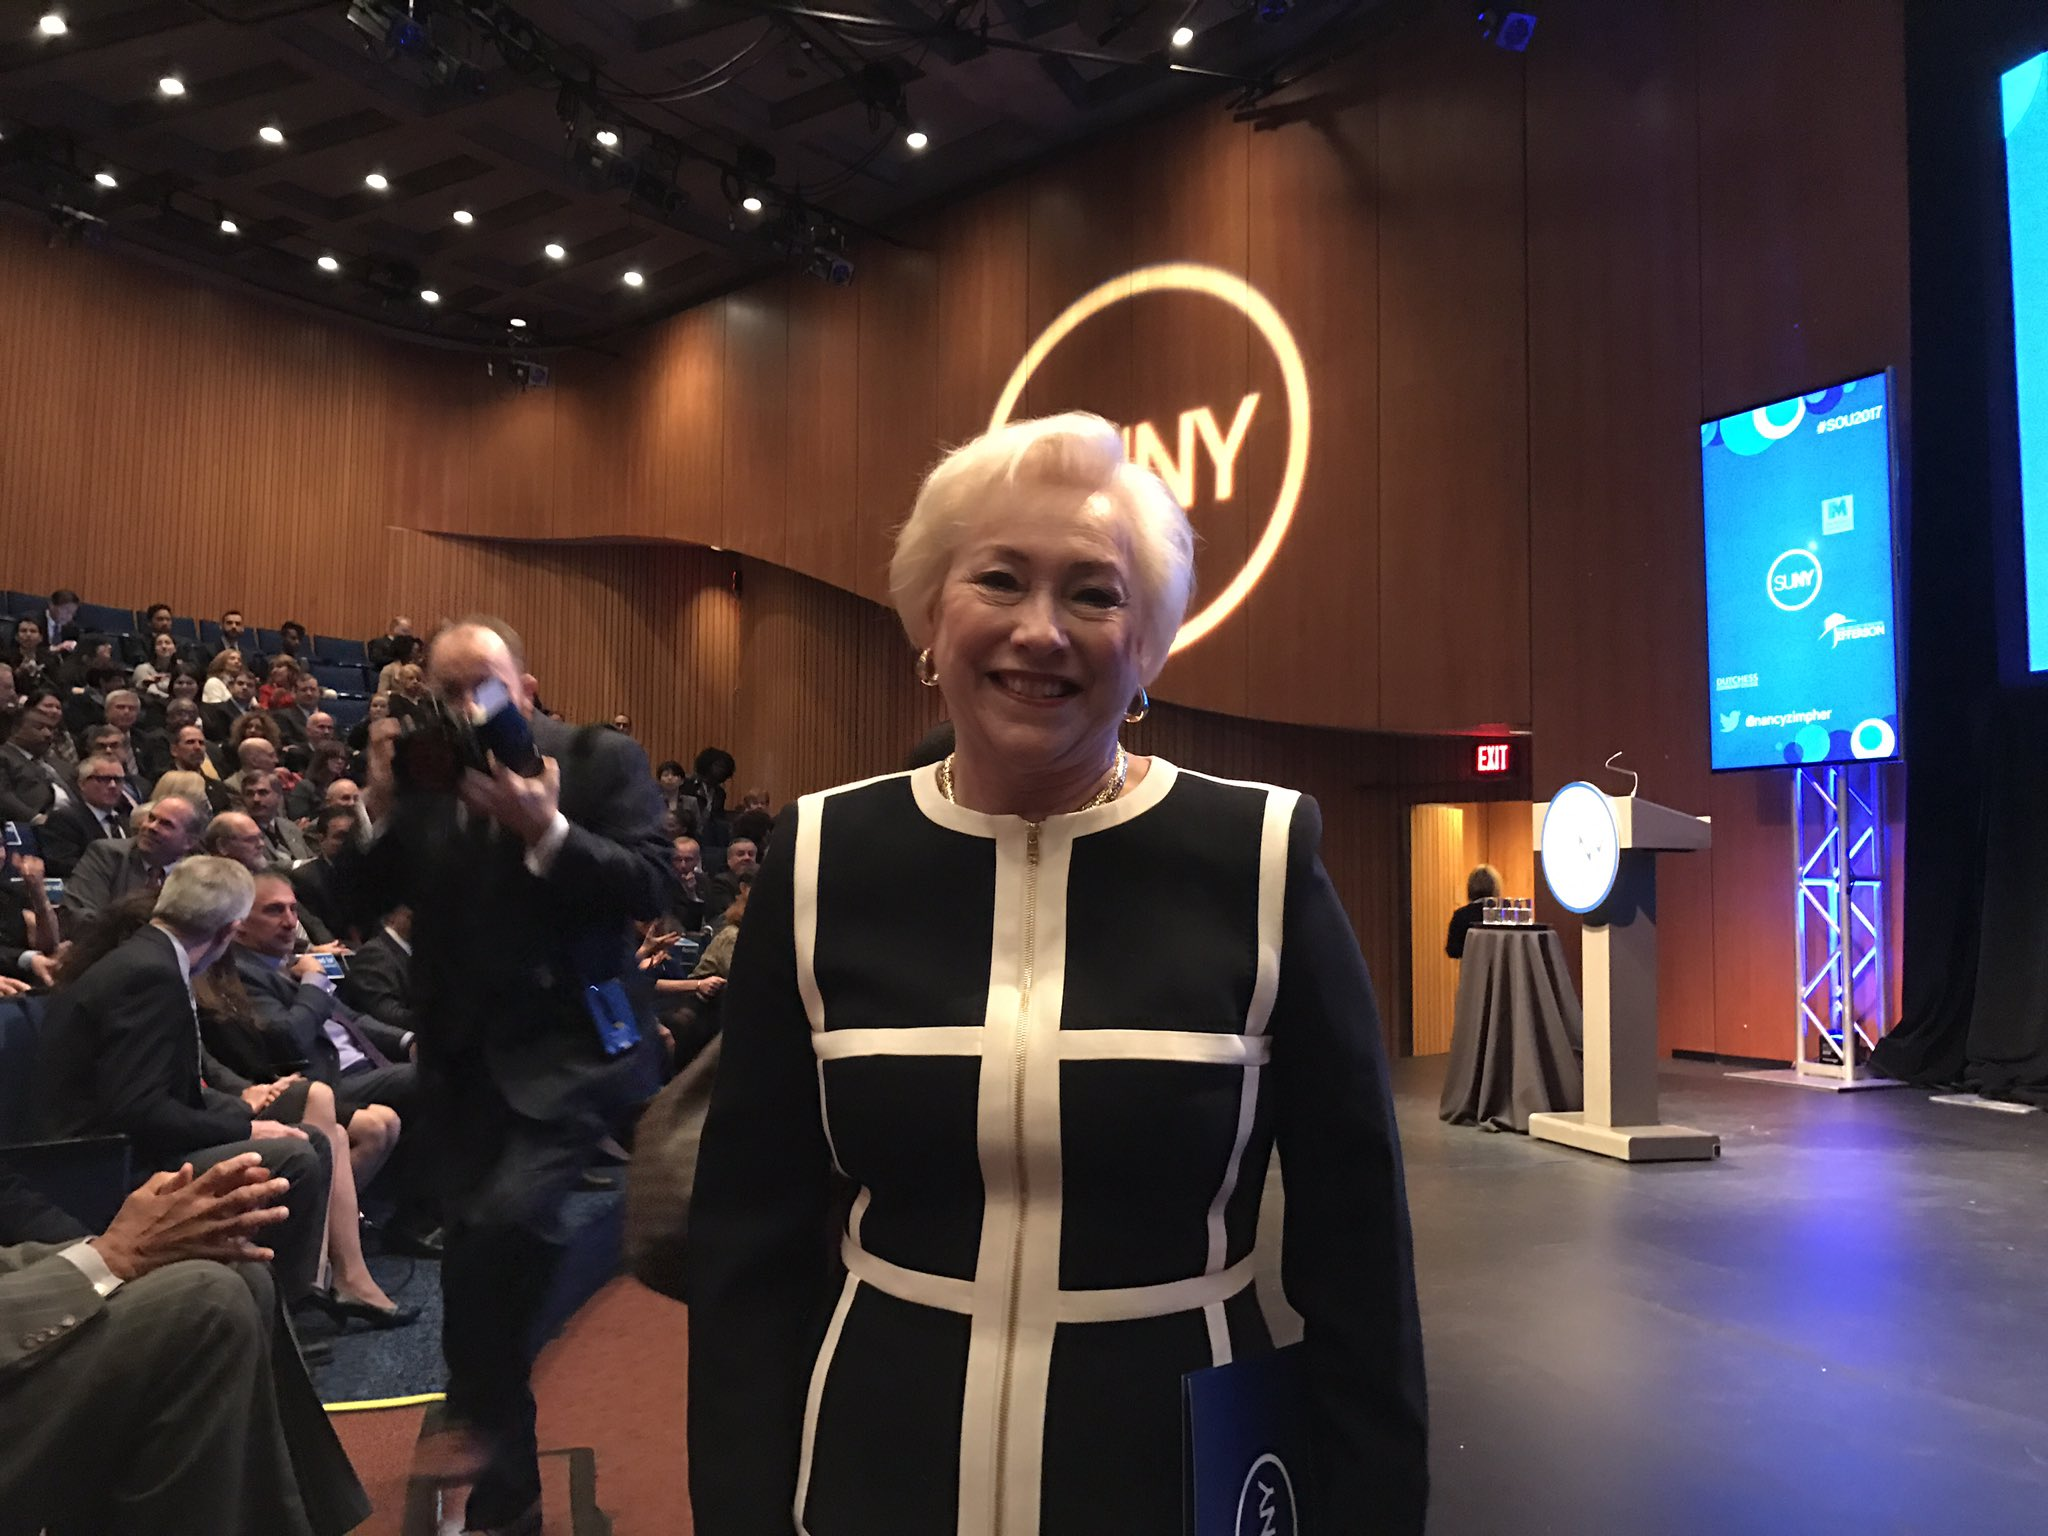 Proud to attend Chancellor Nancy Zimpher's final State of SUNY address. She will be a huge loss when she retires. A great address today. https://t.co/etS1fCJscY